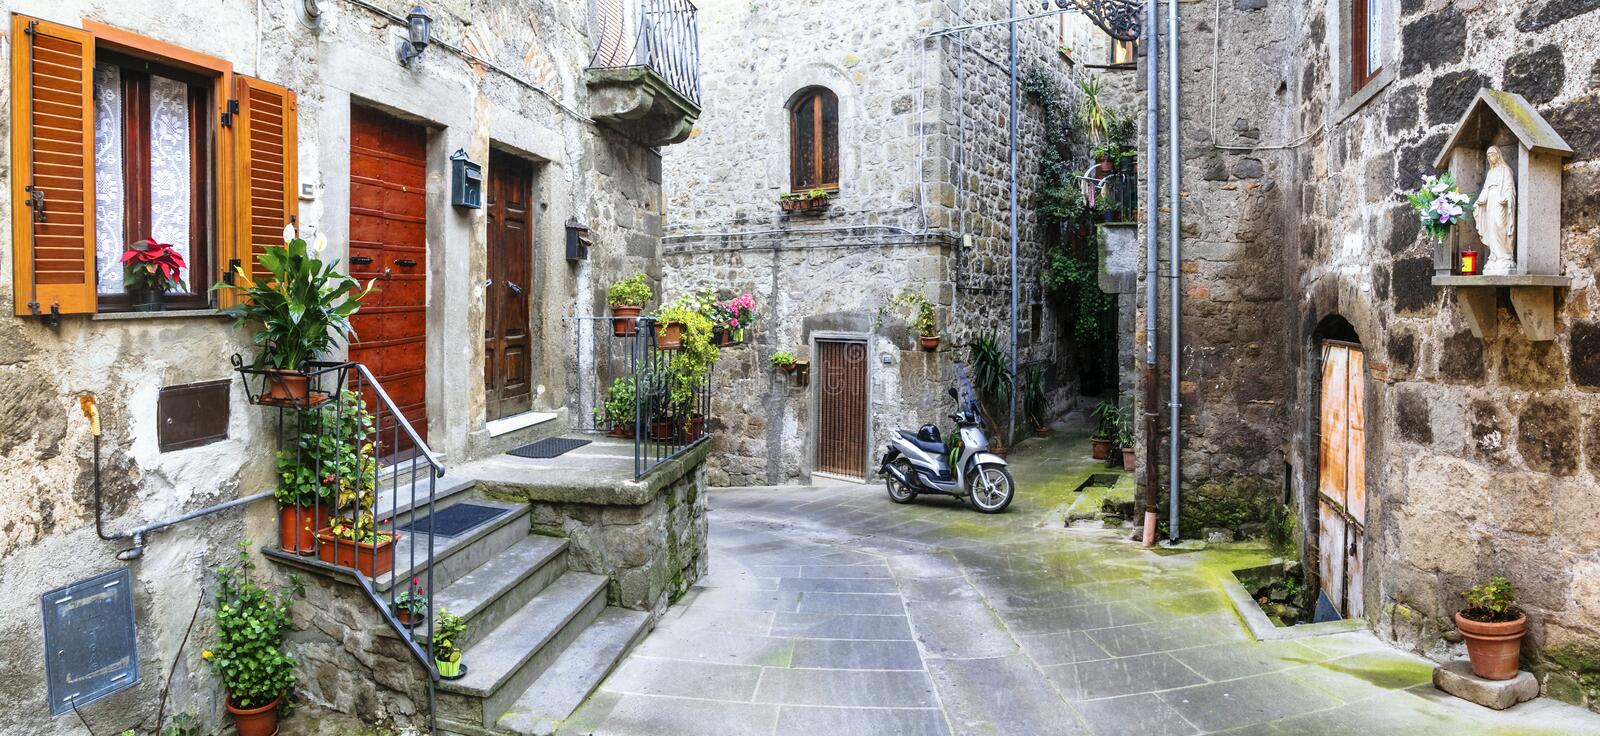 Charming streets of old italian villages. Vitorchiano stock photo